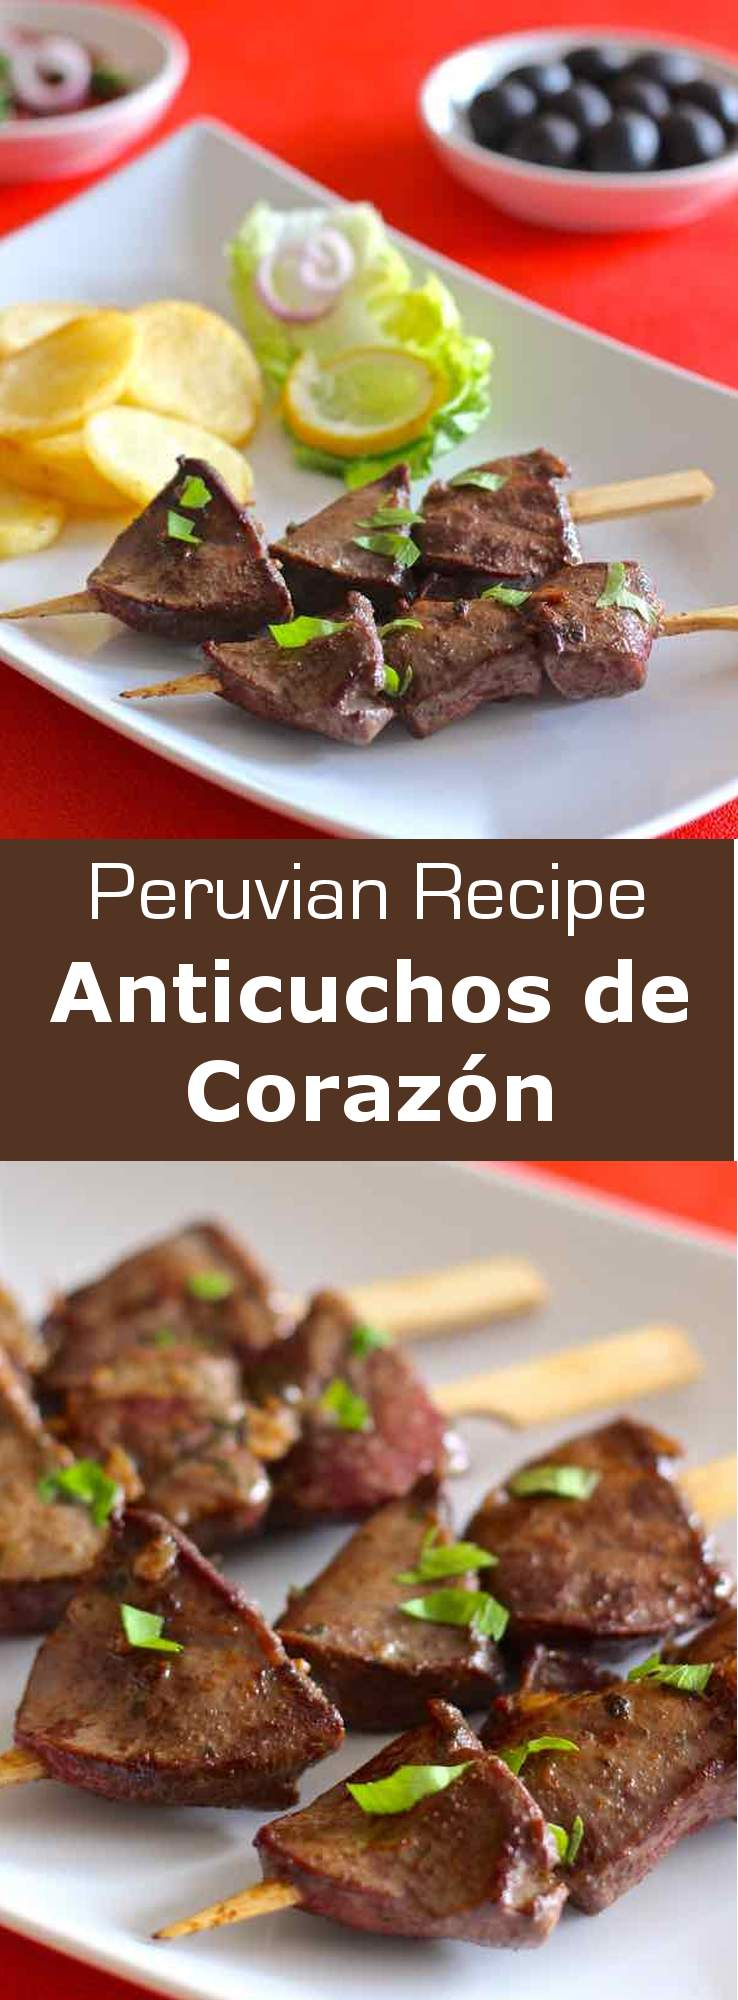 Anticuchos de corazón are beef heart chunks that are marinated for several hours, before being skewered and grilled. #BBQ #peru